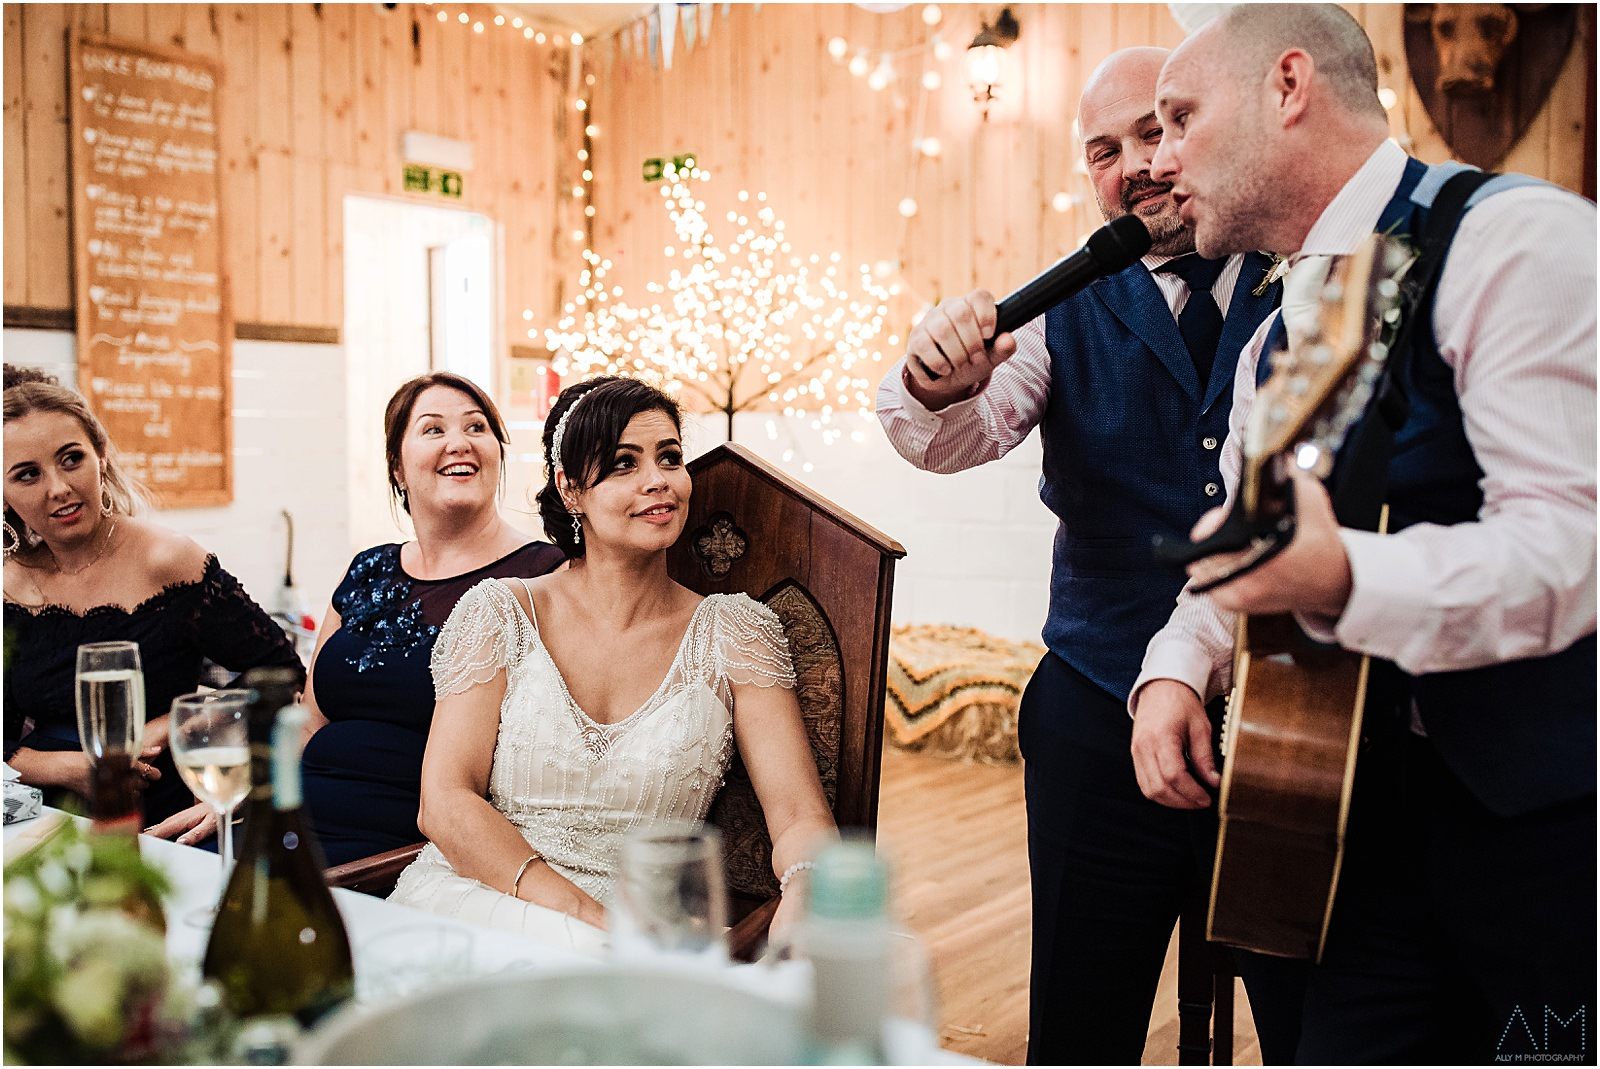 Groom singing the the bride at the wellbeing farm